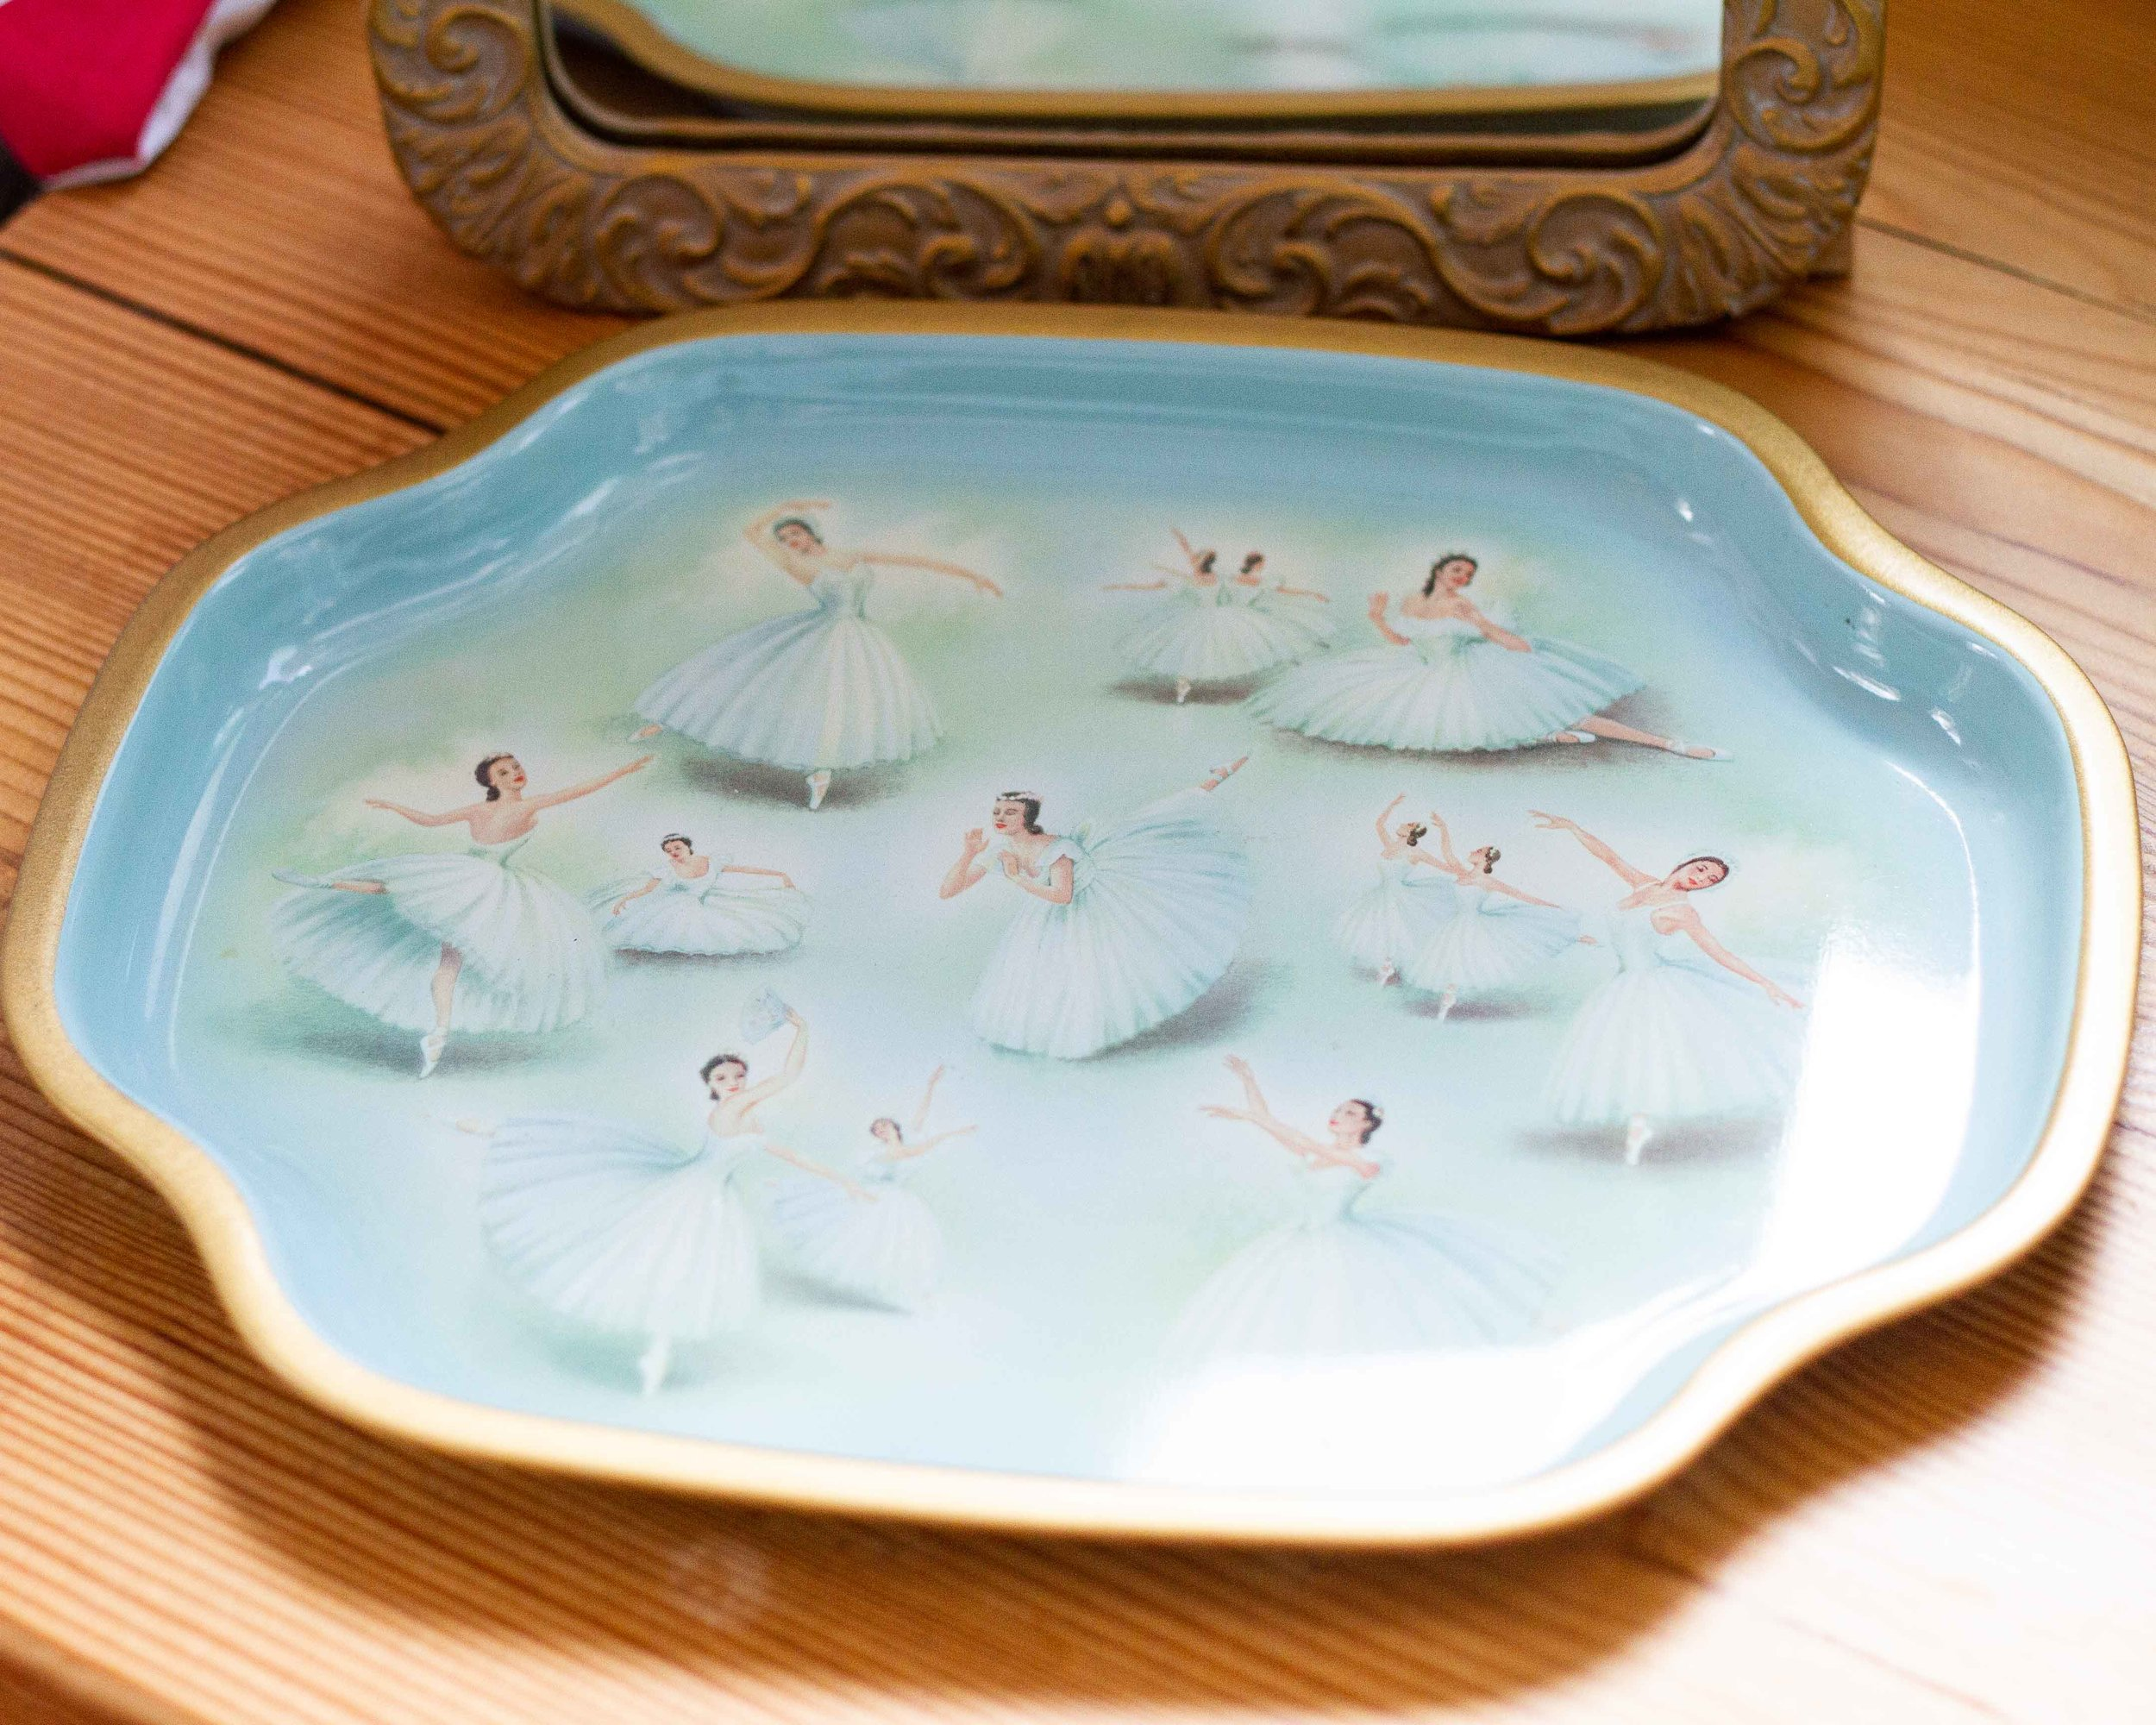 A vintage Worcester Ware Tray